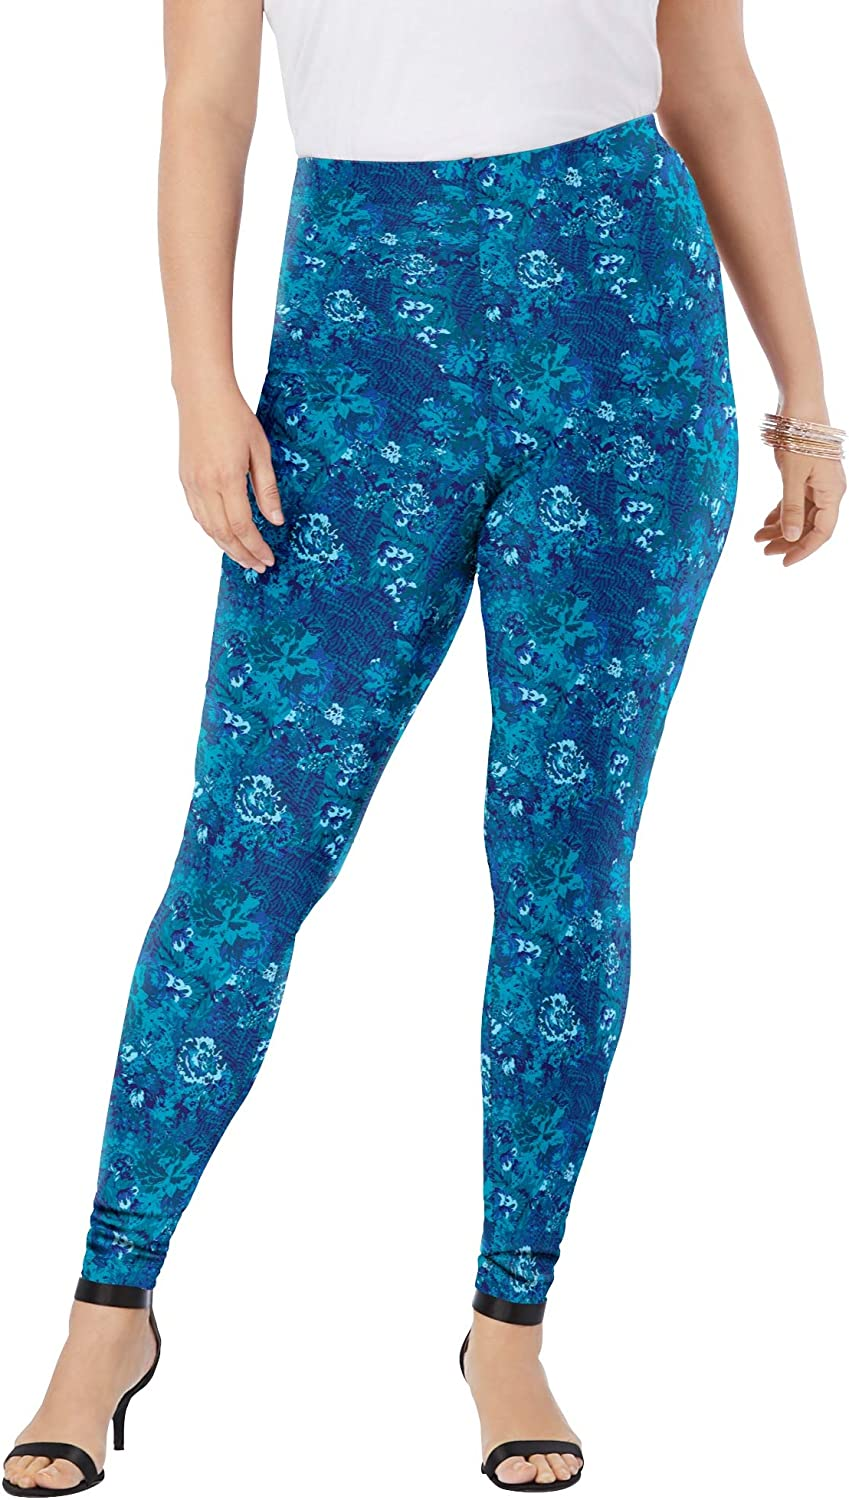 Roamans Womens Plus Size Ankle-Length Essential Stretch Legging Activewear Workout Yoga Pants